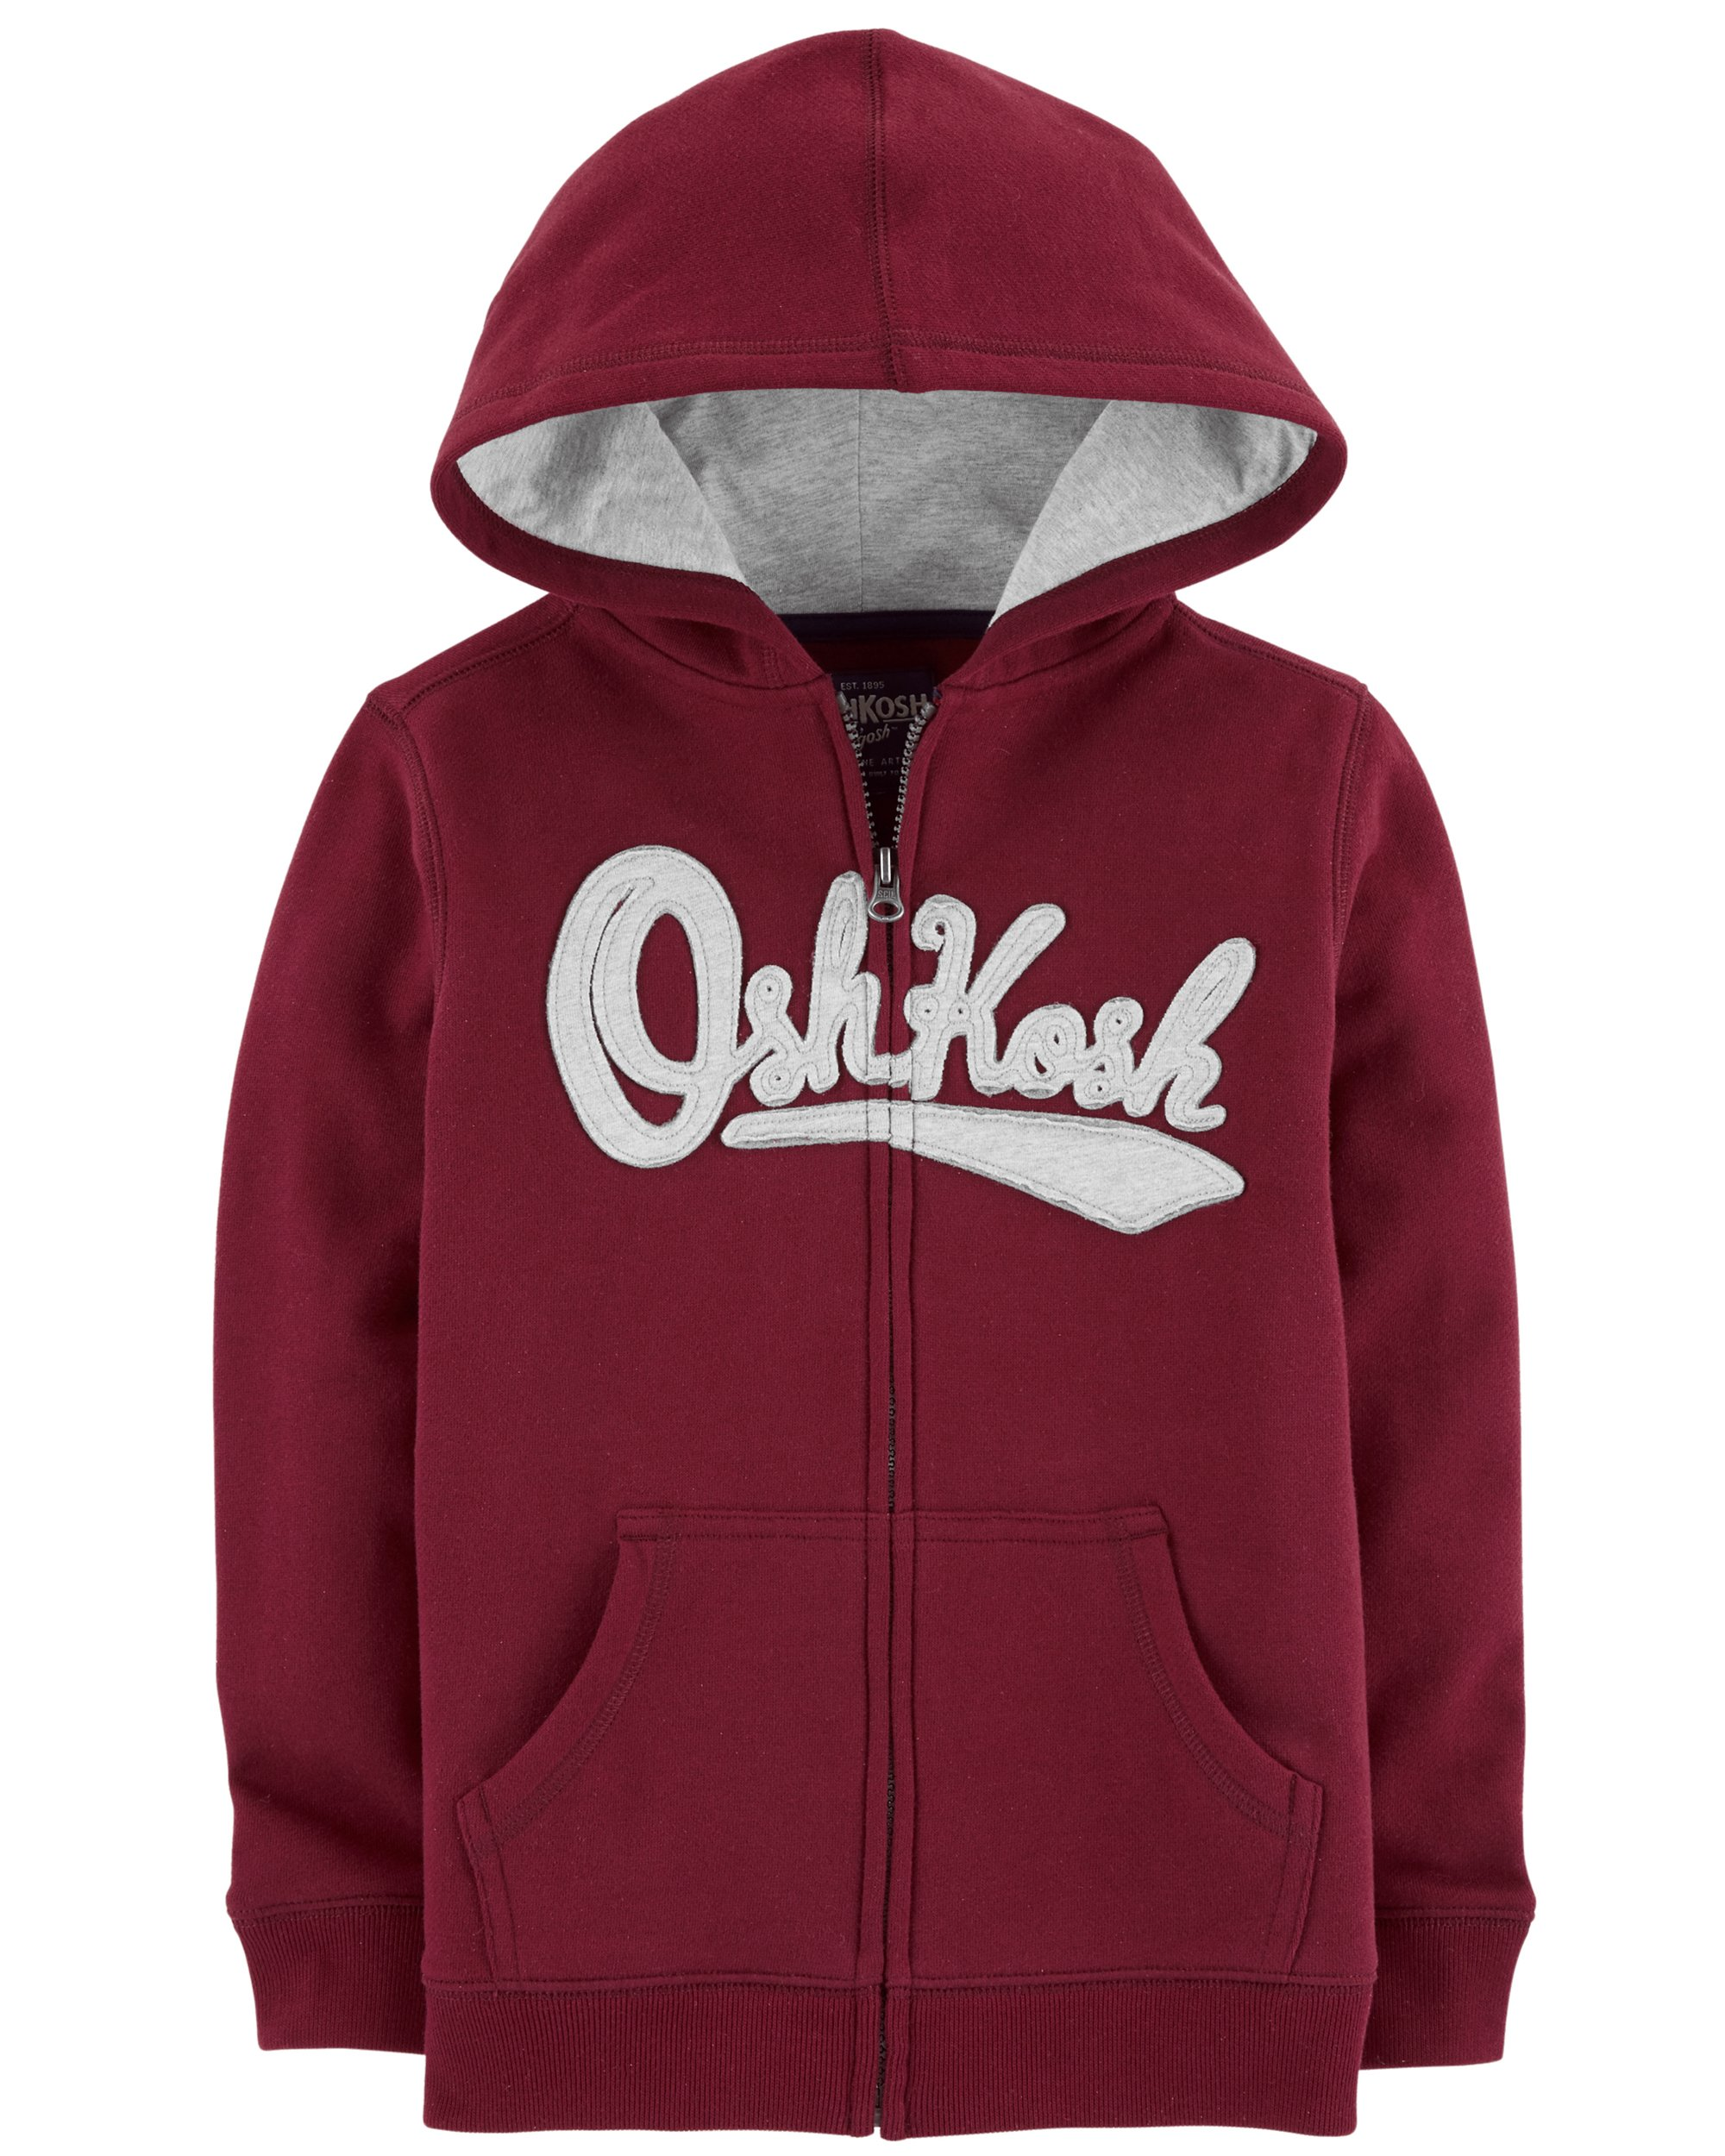 OshKosh B'Gosh Boys' Kids Full Zip Logo Hoodie, Burgundy, 6